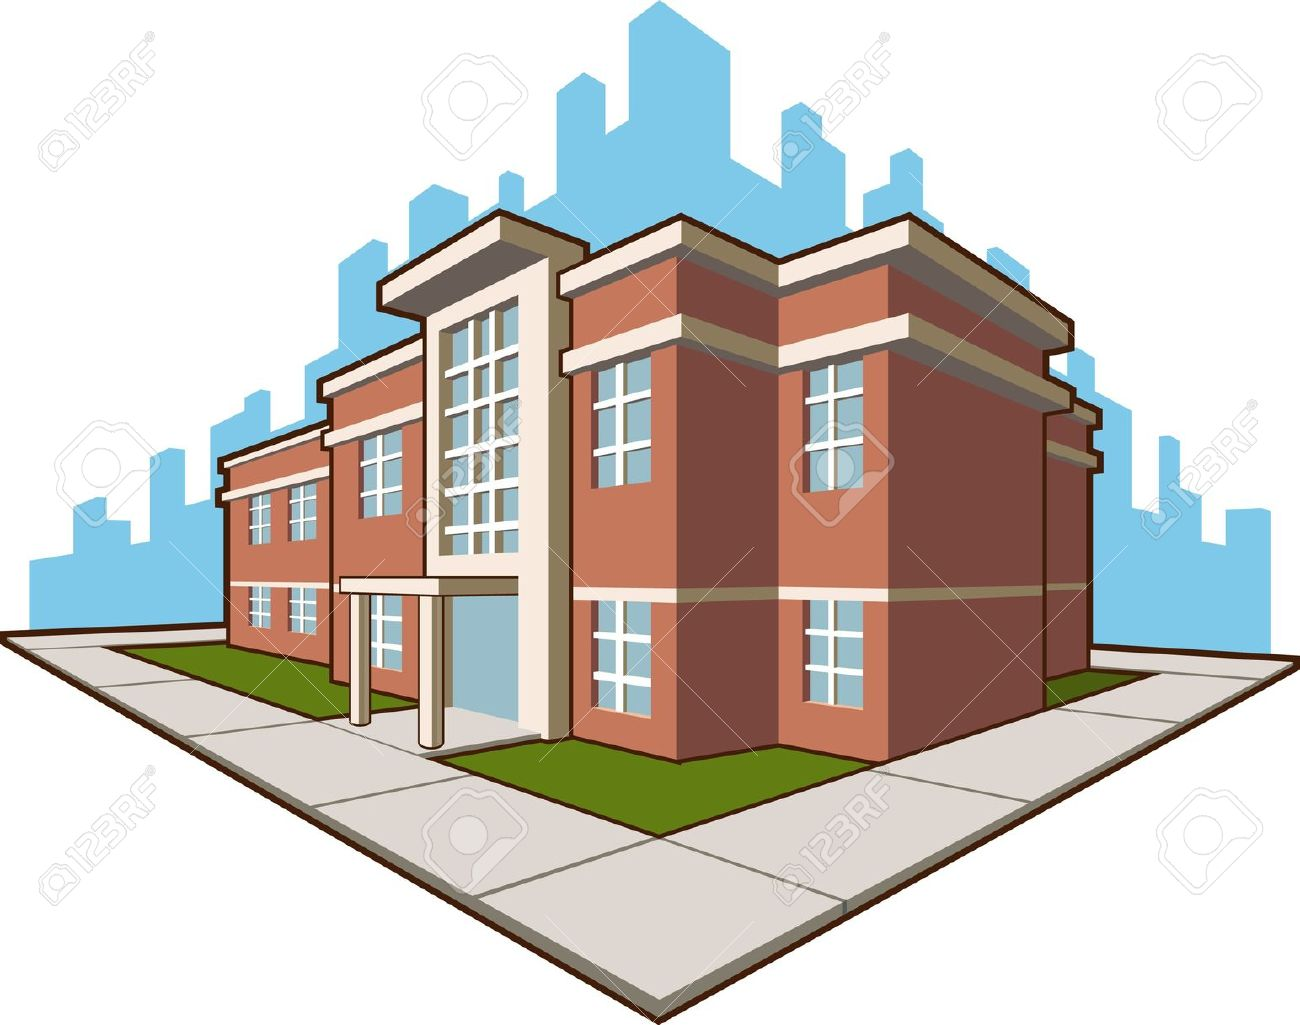 School building clipart png image freeuse download University building clipart png - ClipartFest image freeuse download